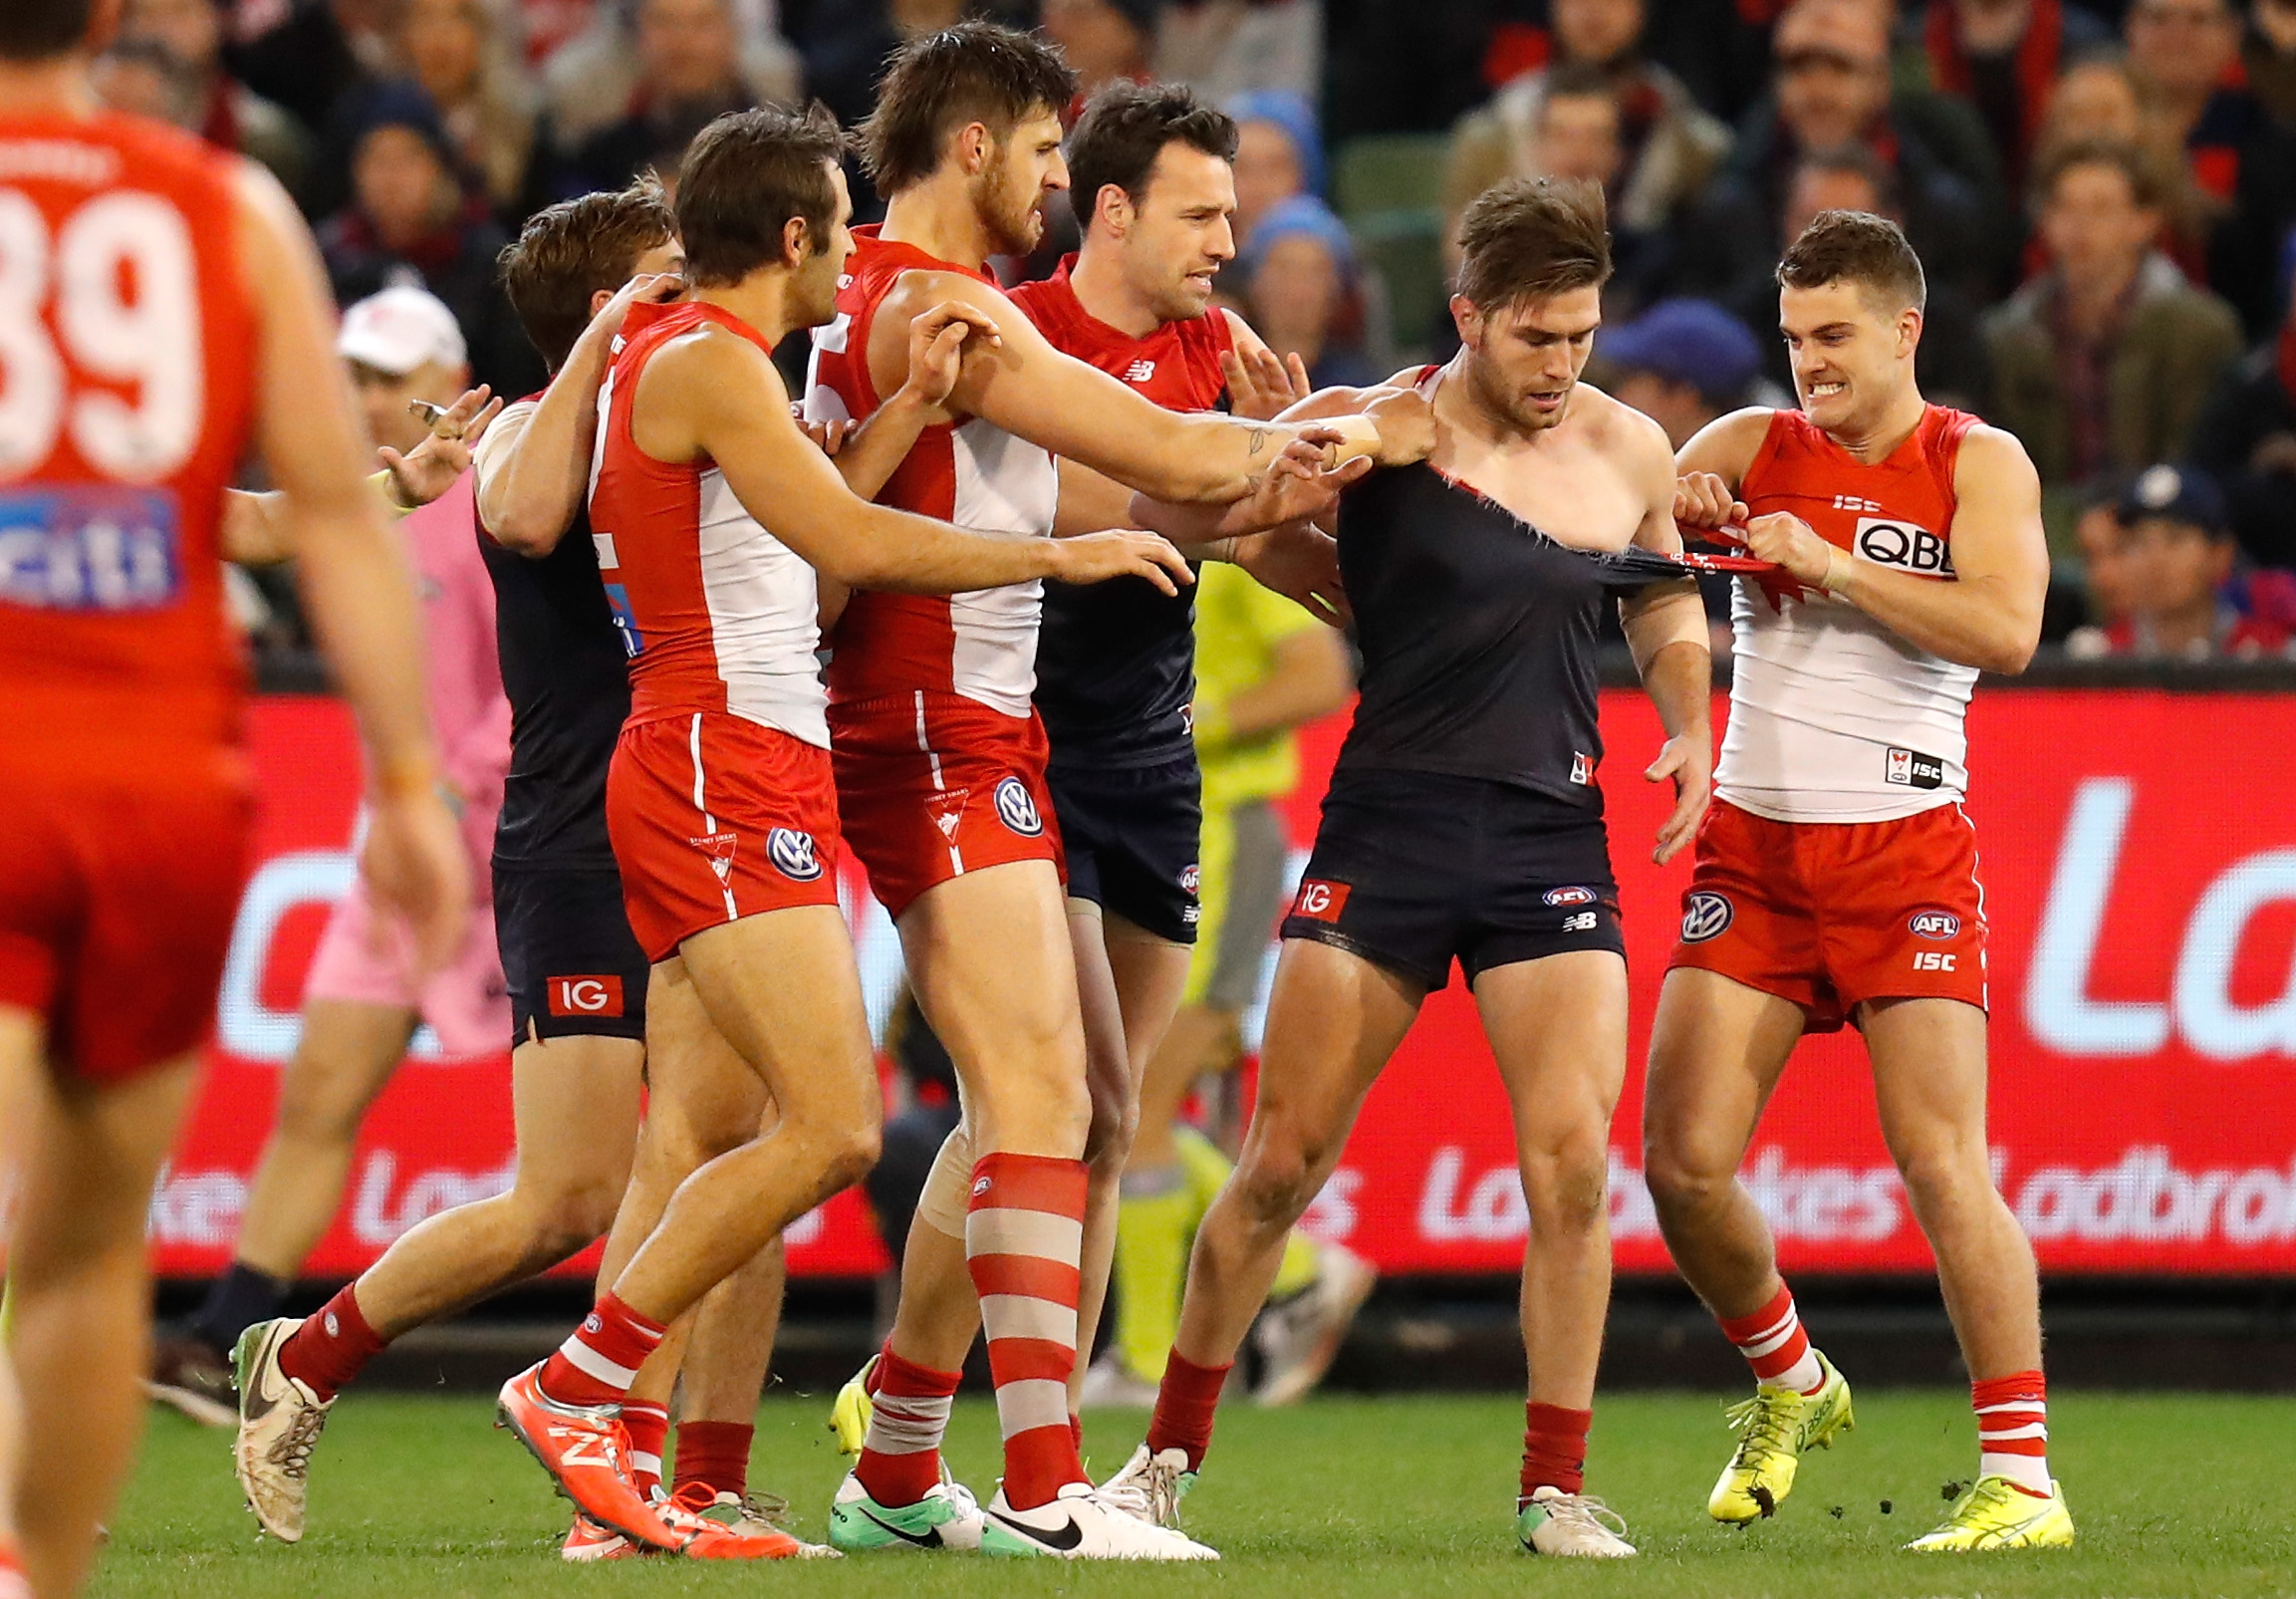 'Embarrassed' Bugg apologises for Mills punch